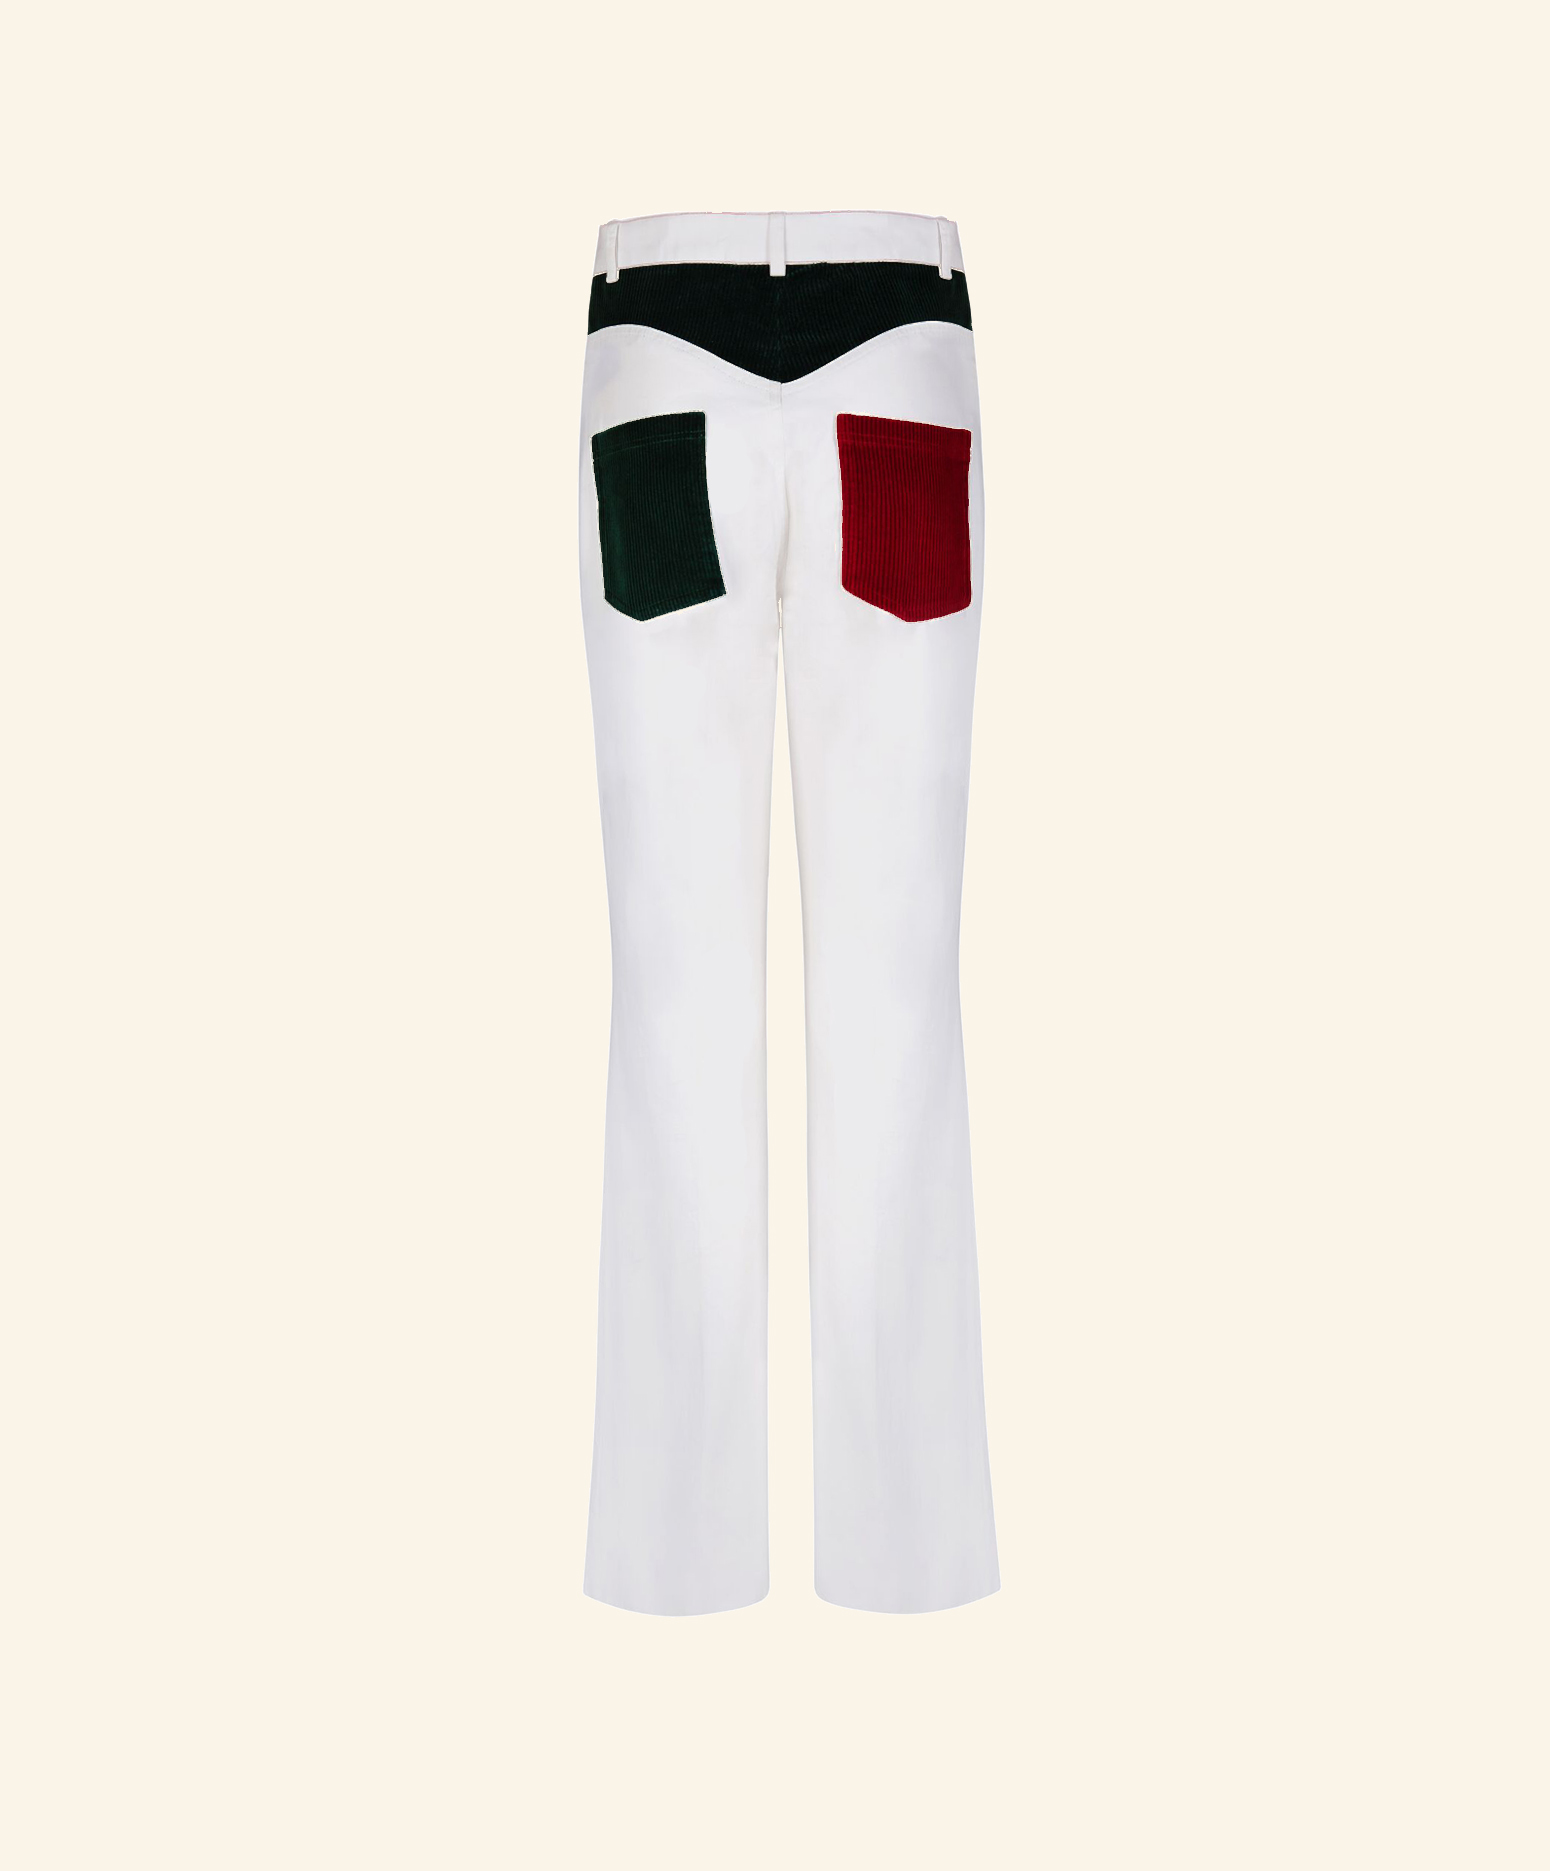 https://www.sannelondon.com/wp-content/uploads/2019/07/White-Trousers-Patched-Pockets-back.jpg